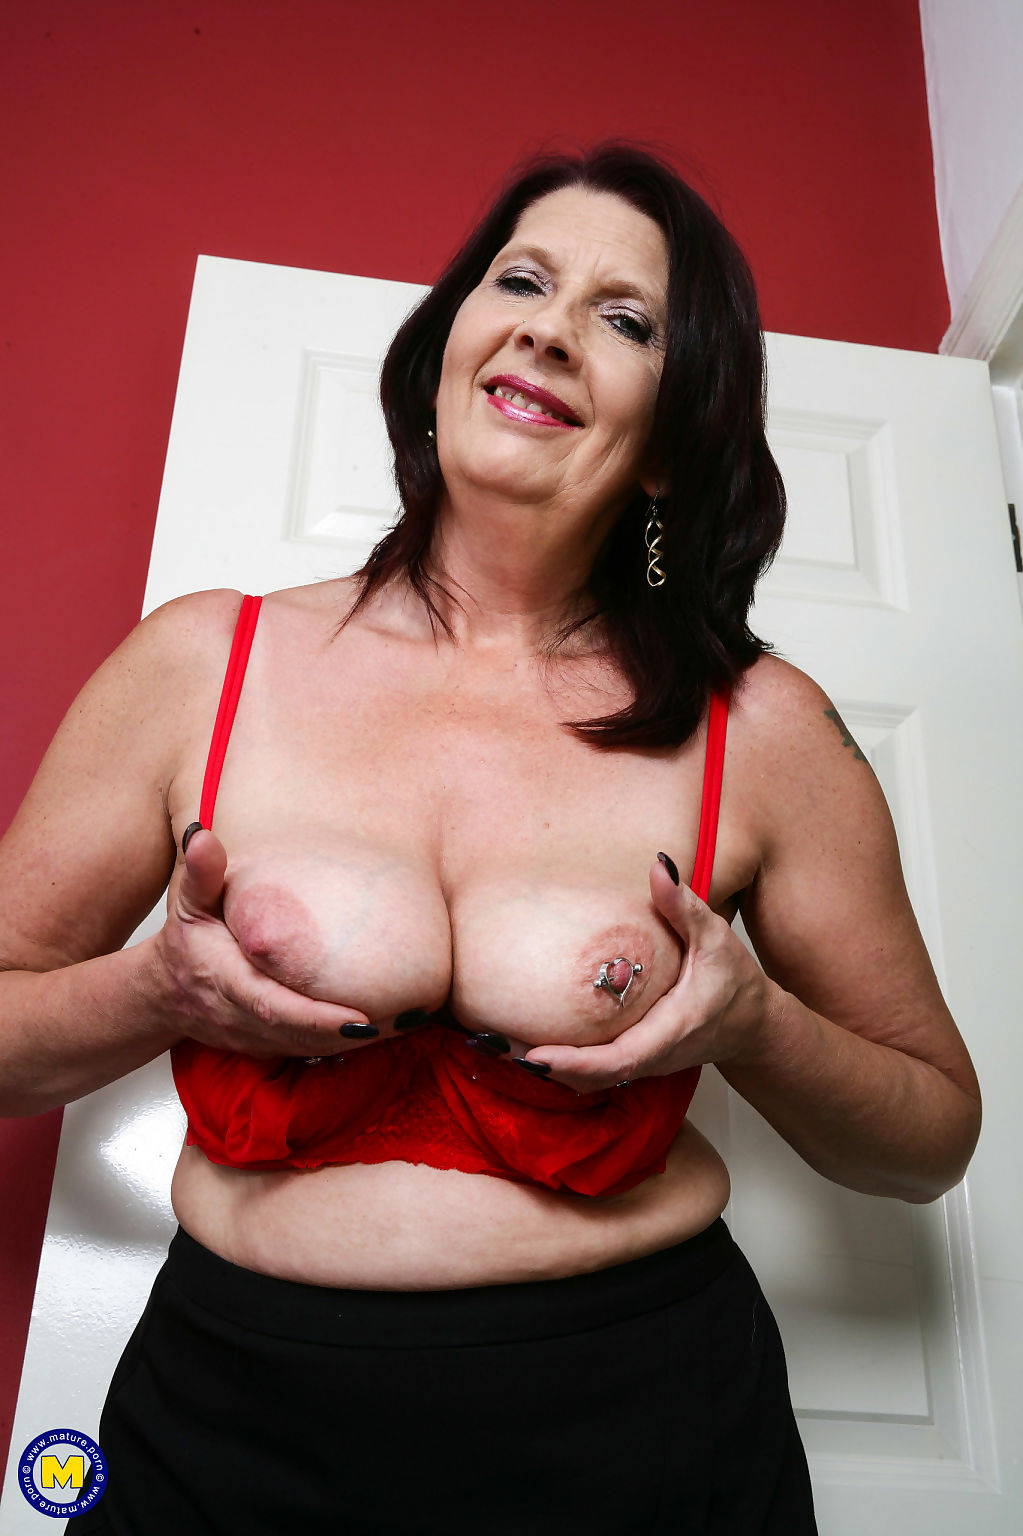 Horny mature slut katie leigh from the uk getting wet and wild - part 2564